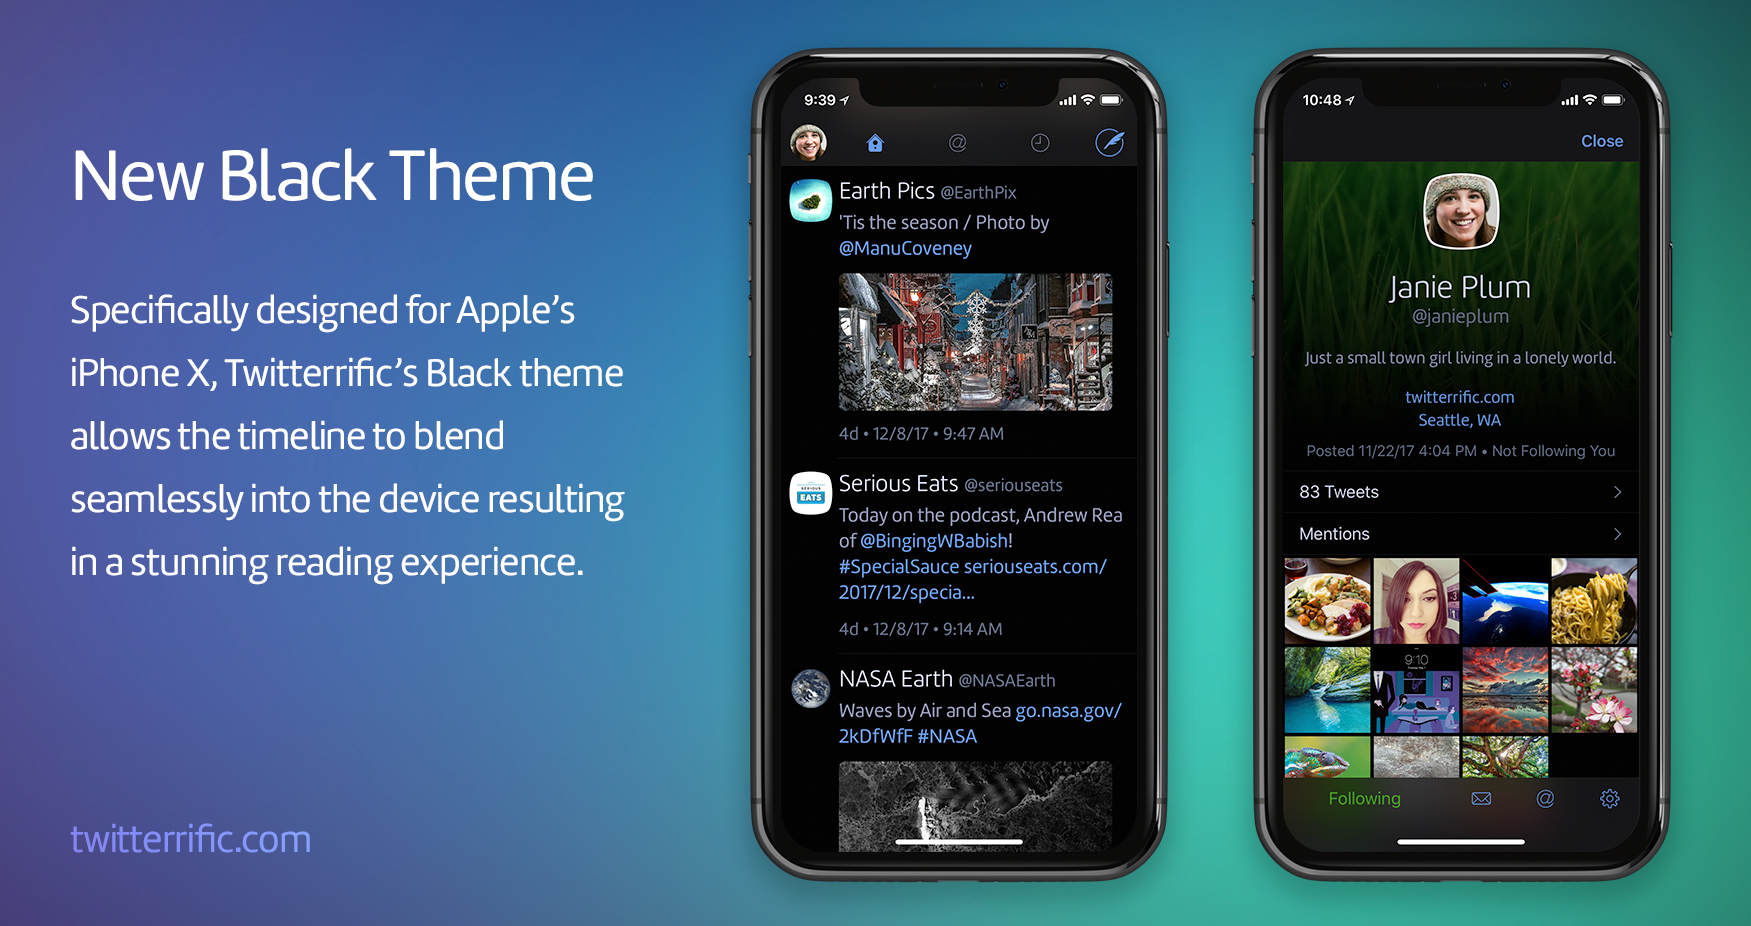 New Black theme designed for iPhone X in Twitterrific 5.18